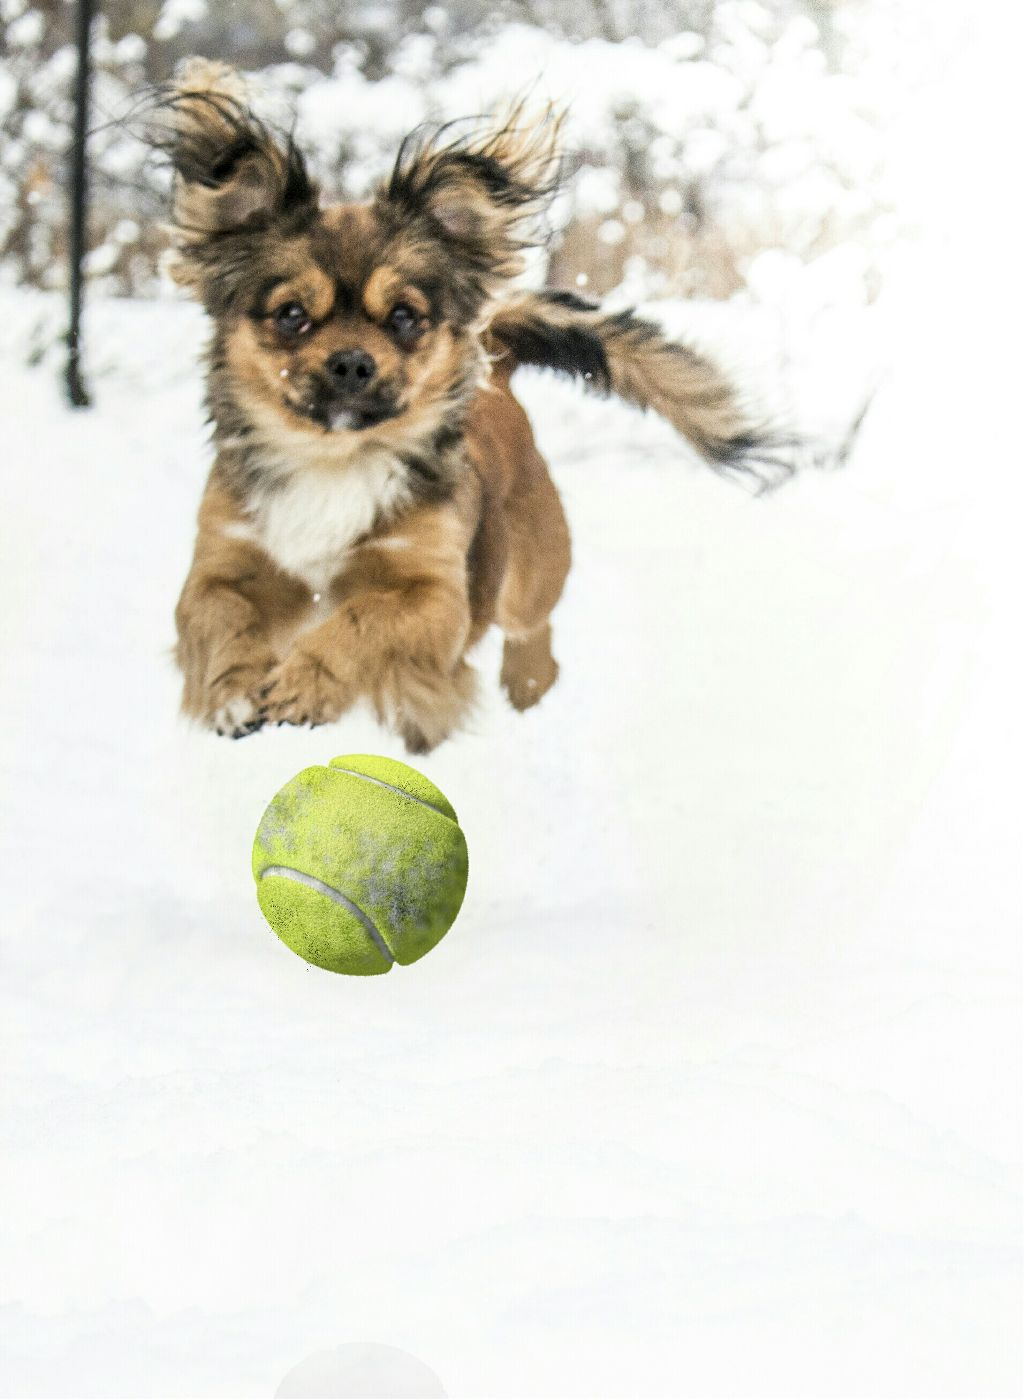 And here's my dog fooling around 🐶 #dog #jump #ball #tennisball #snow #cold #white #pet #animal #nature #cute